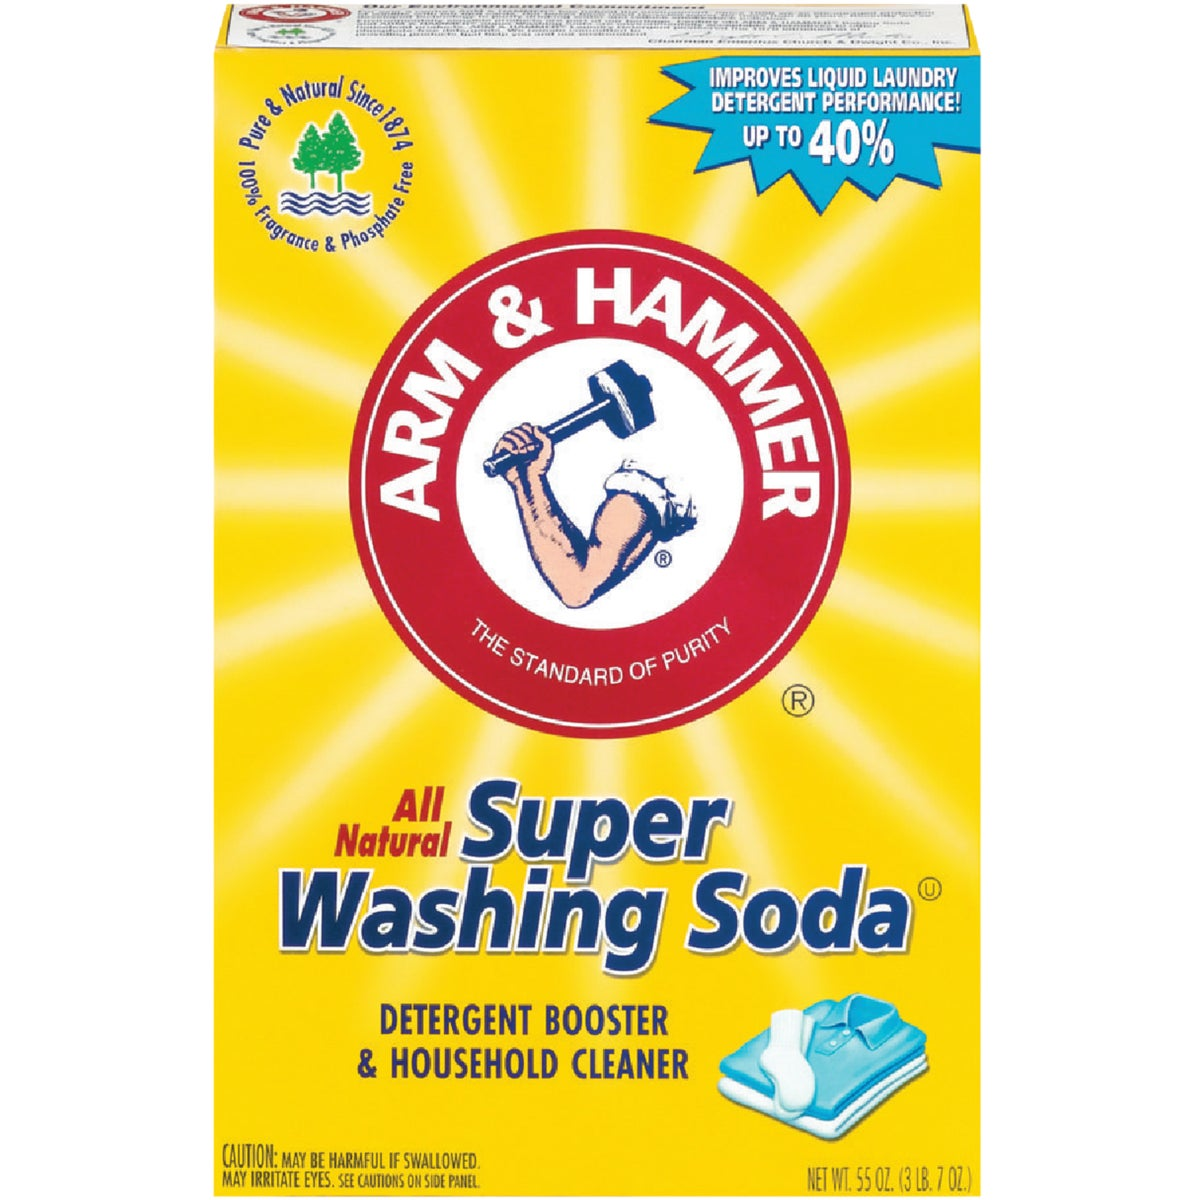 A&H SUPER WASHING SODA